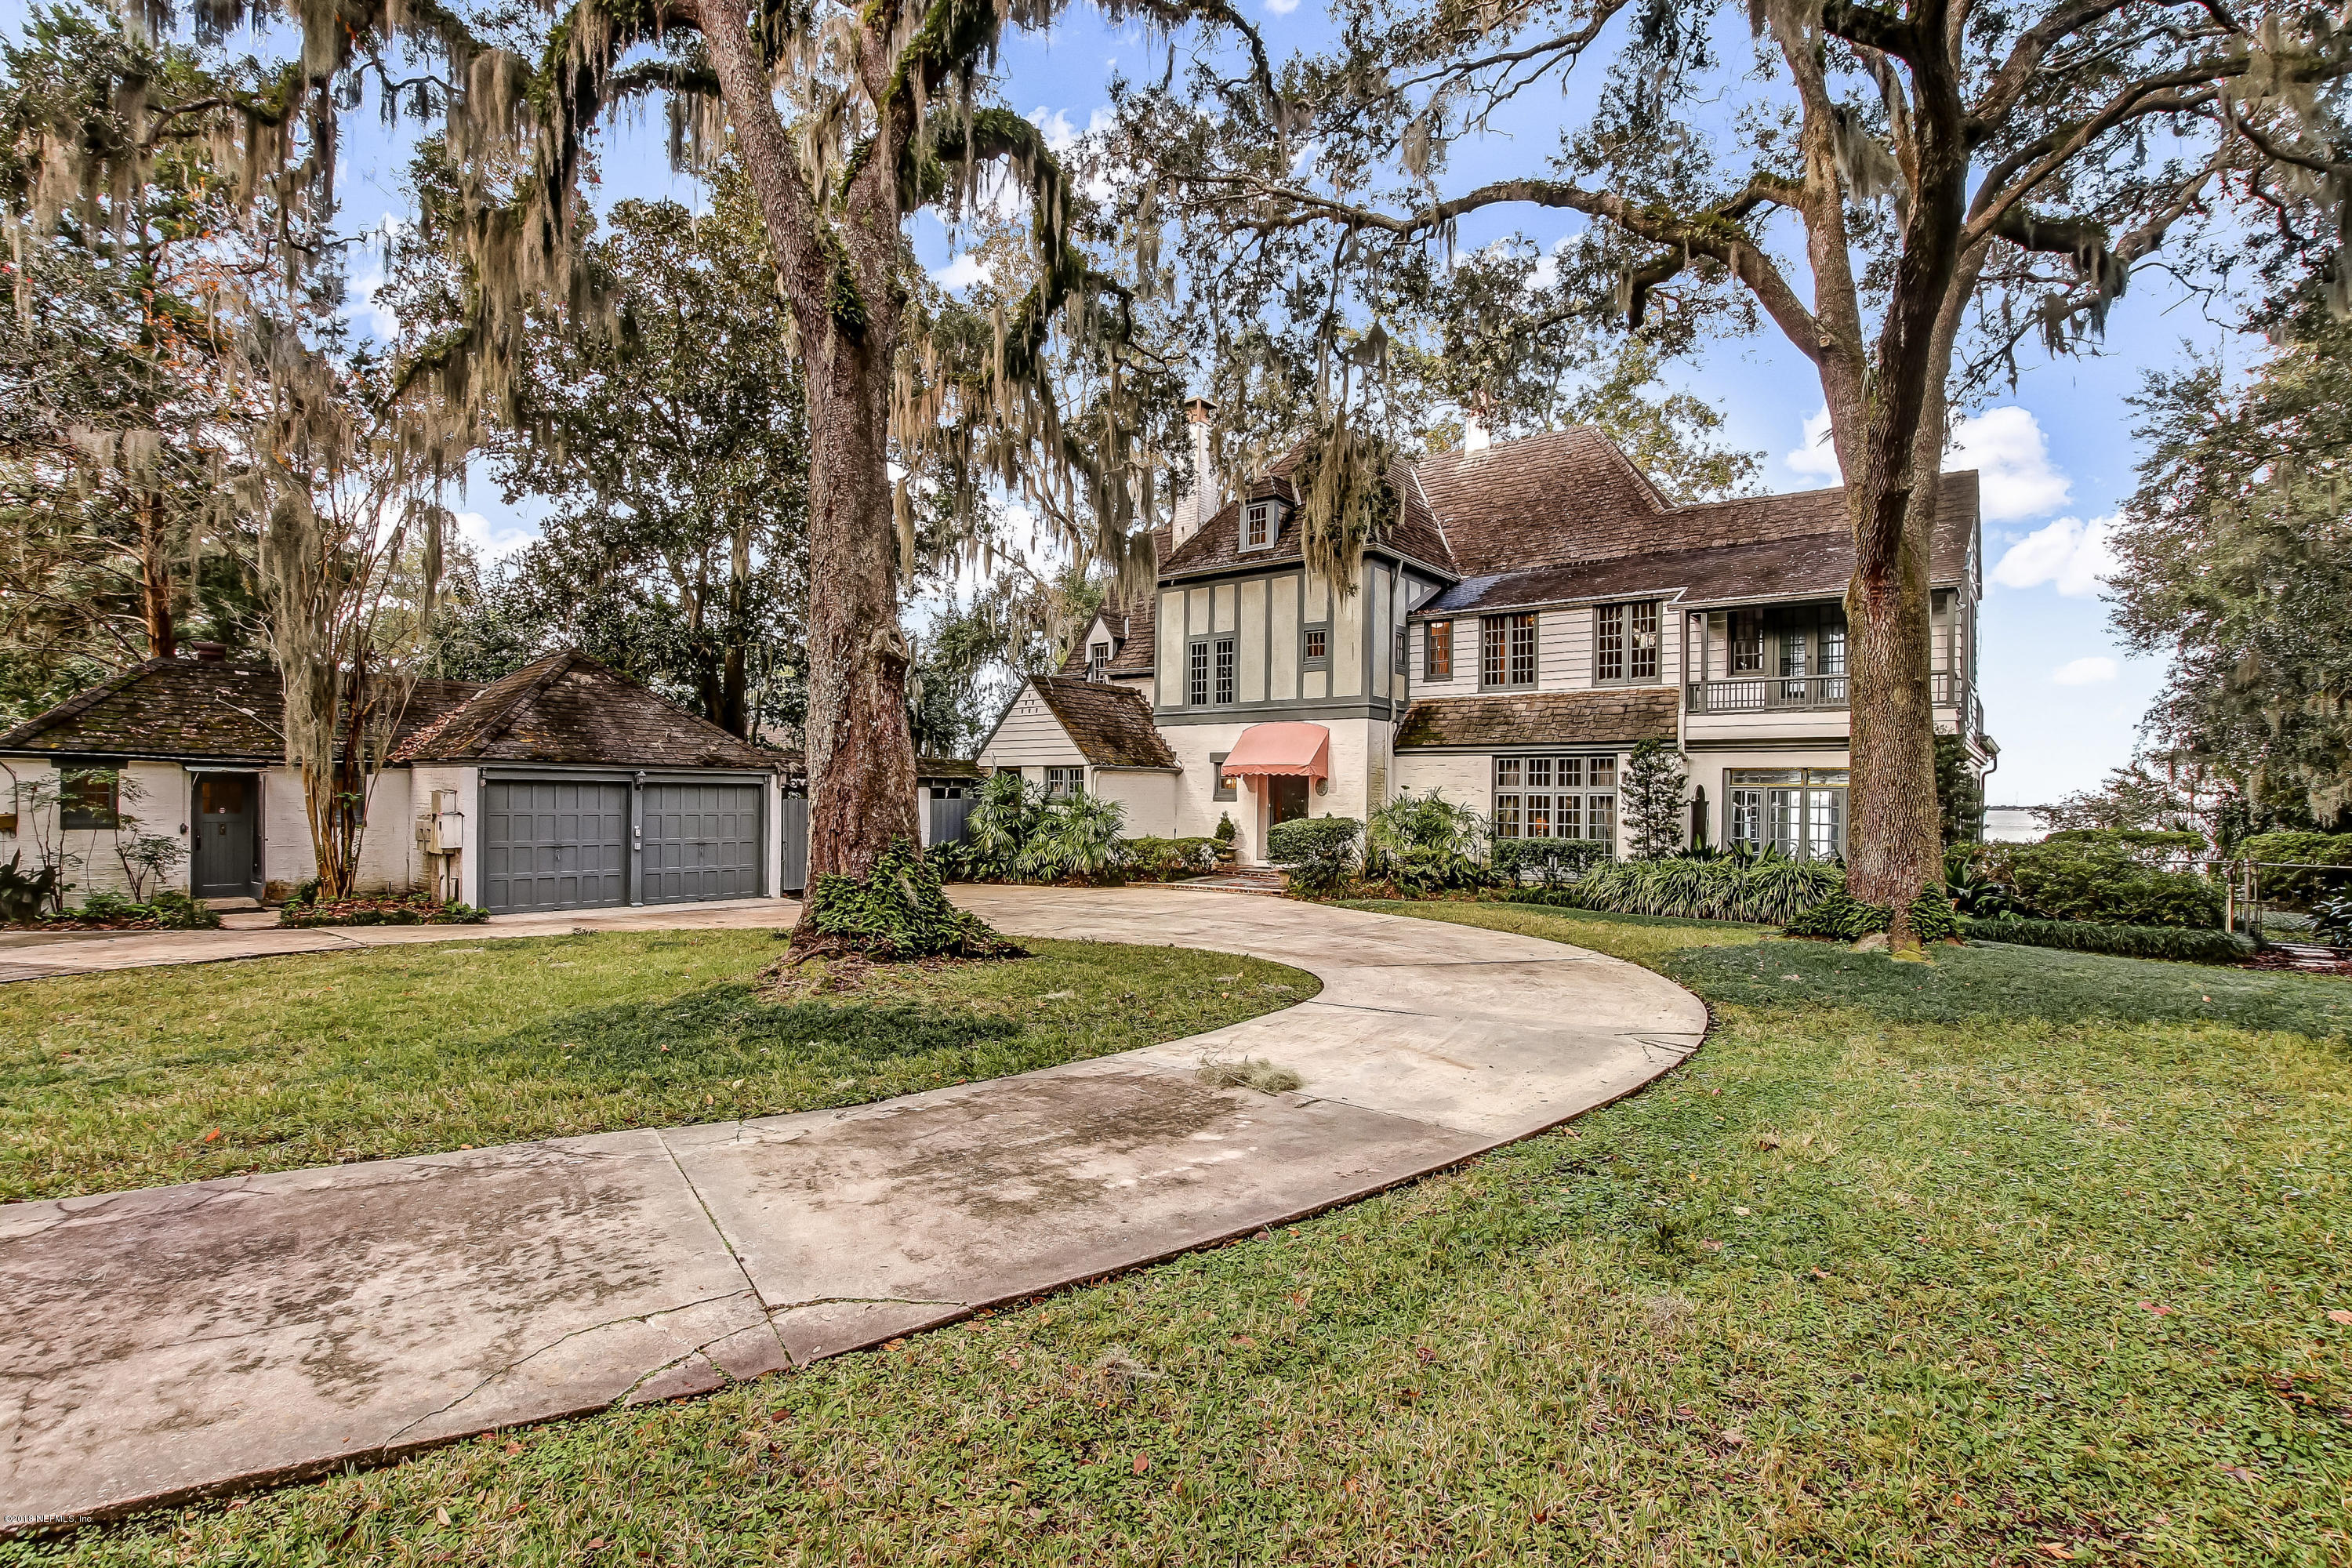 4061 TIMUQUANA, JACKSONVILLE, FLORIDA 32210, 5 Bedrooms Bedrooms, ,4 BathroomsBathrooms,Residential - single family,For sale,TIMUQUANA,971719